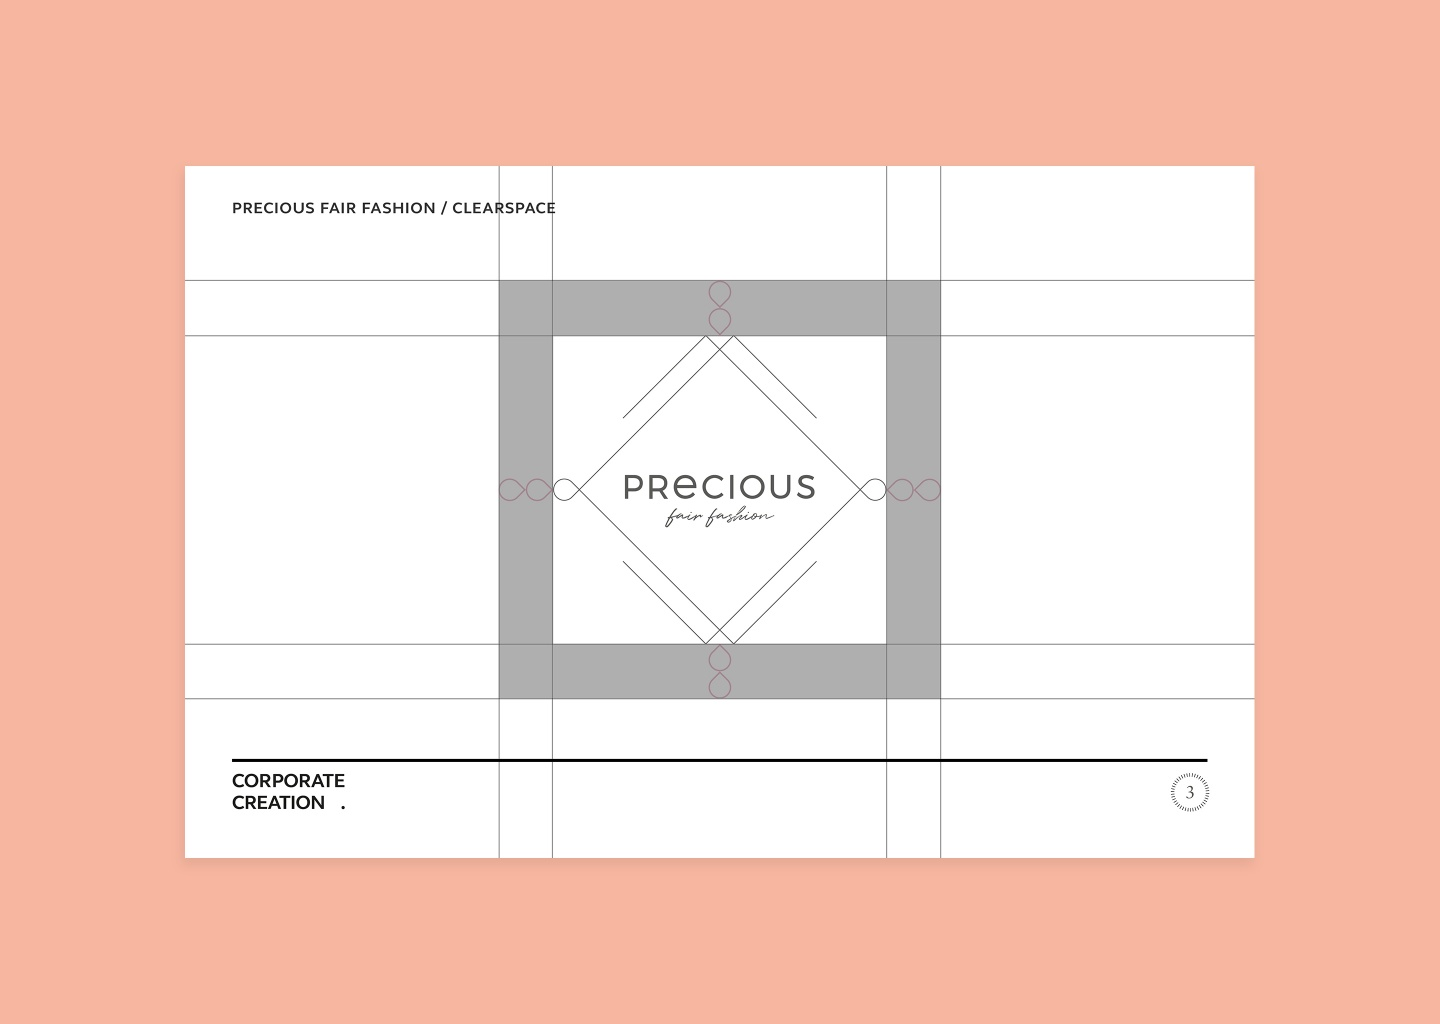 corporate-creation-design-agency-munich-precious-fair-fashion-logo-clearspace.jpg